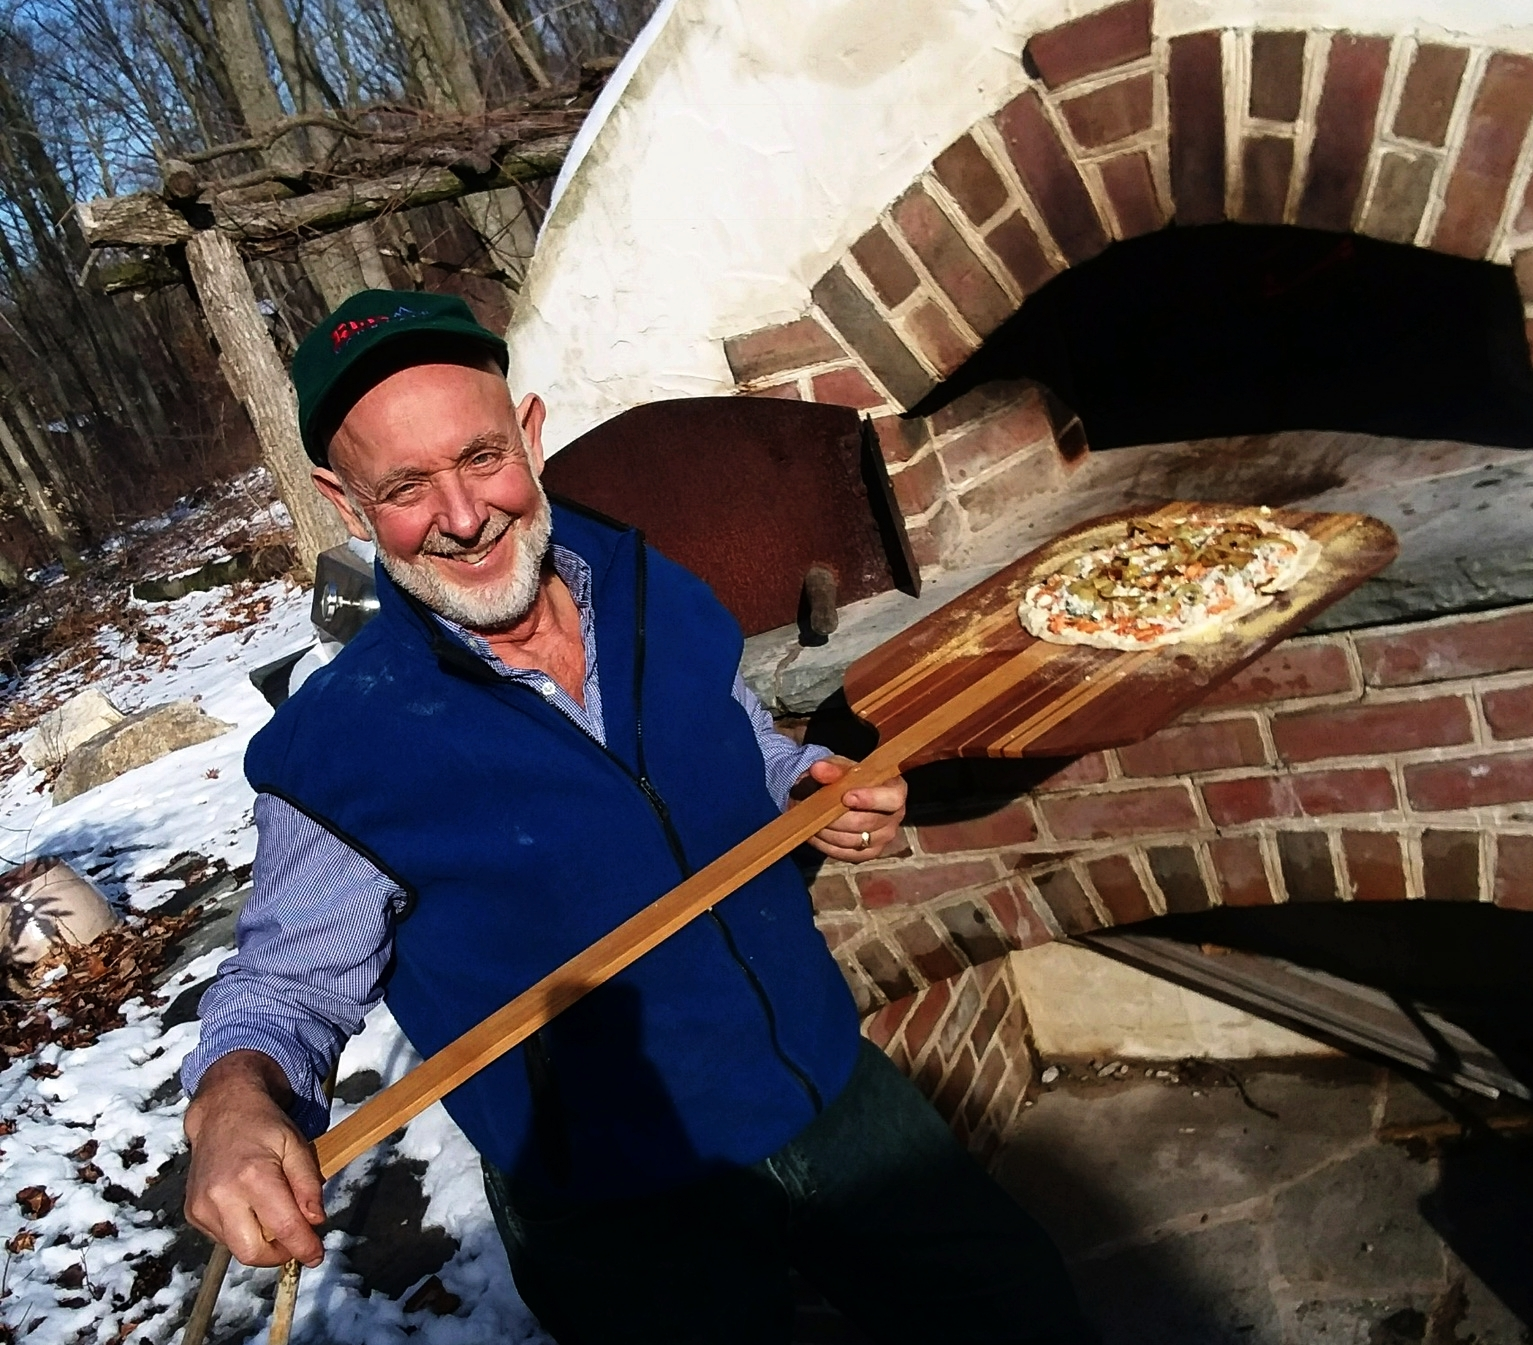 The owner and operator, Eli Smucker, enjoying his wood fired pizza oven at home.